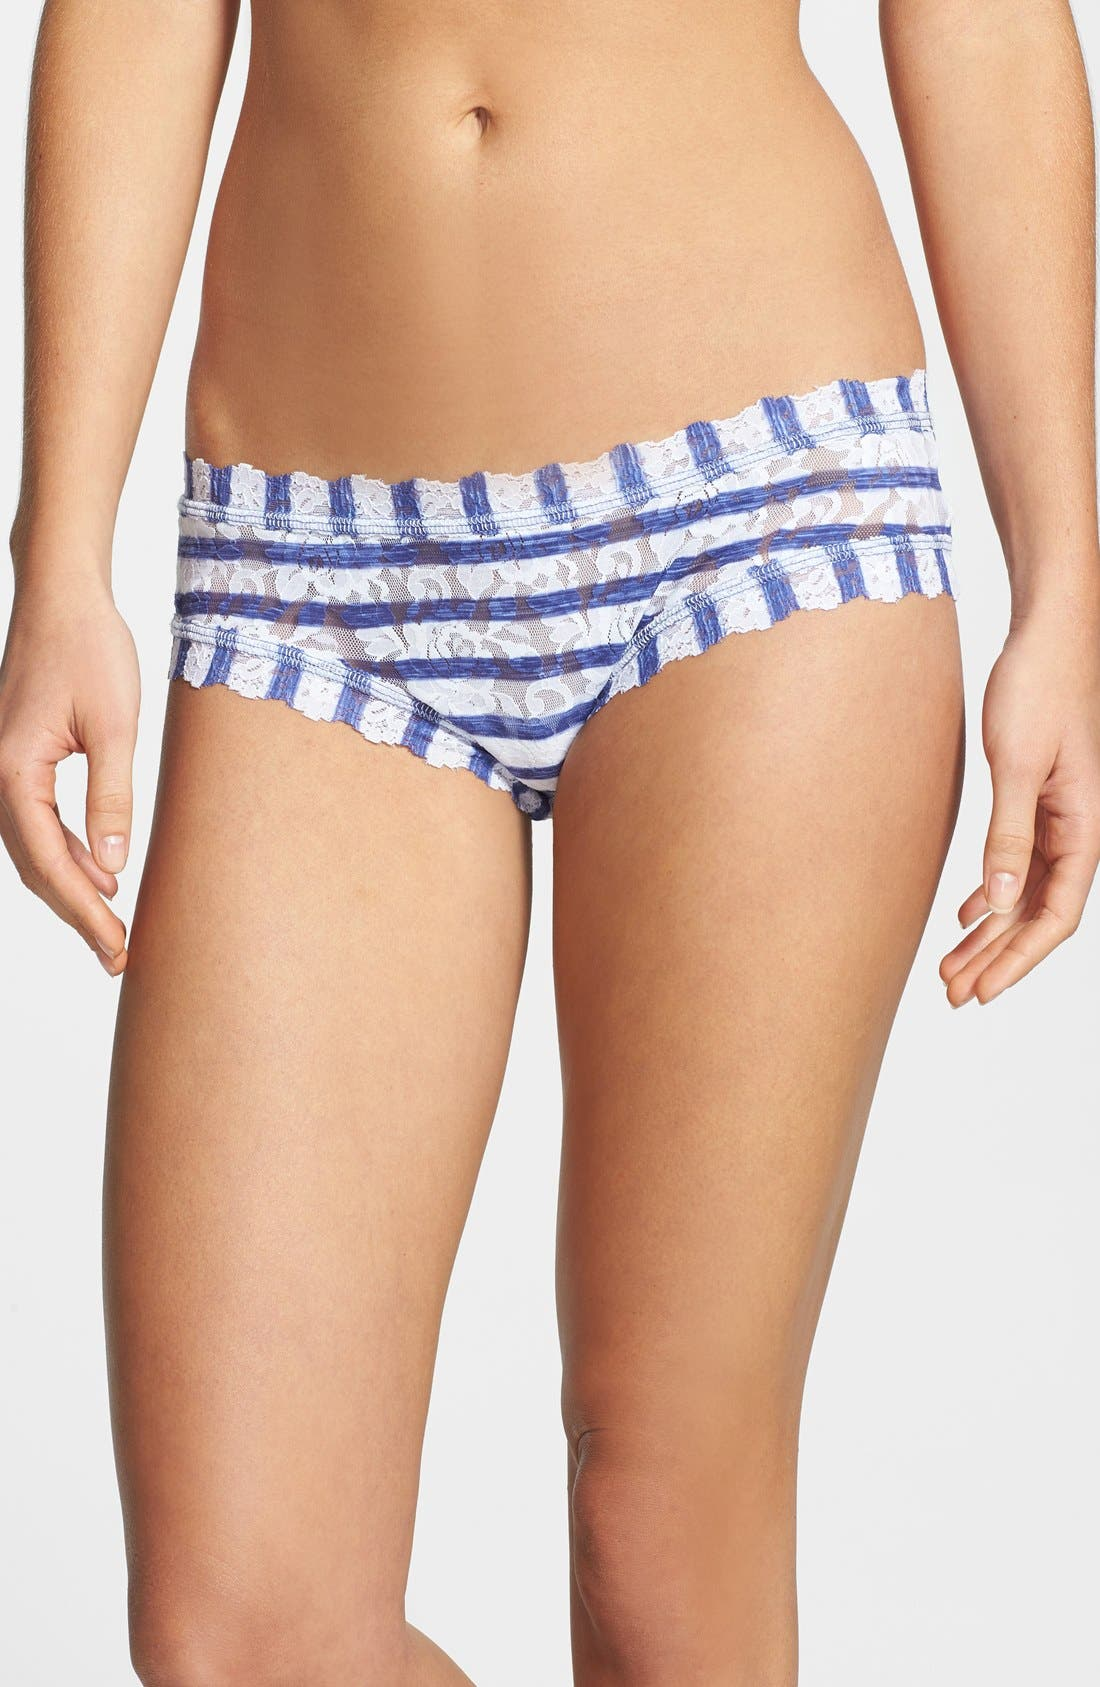 Alternate Image 1 Selected - Hanky Panky 'Sailor Stripe' Hipster Briefs